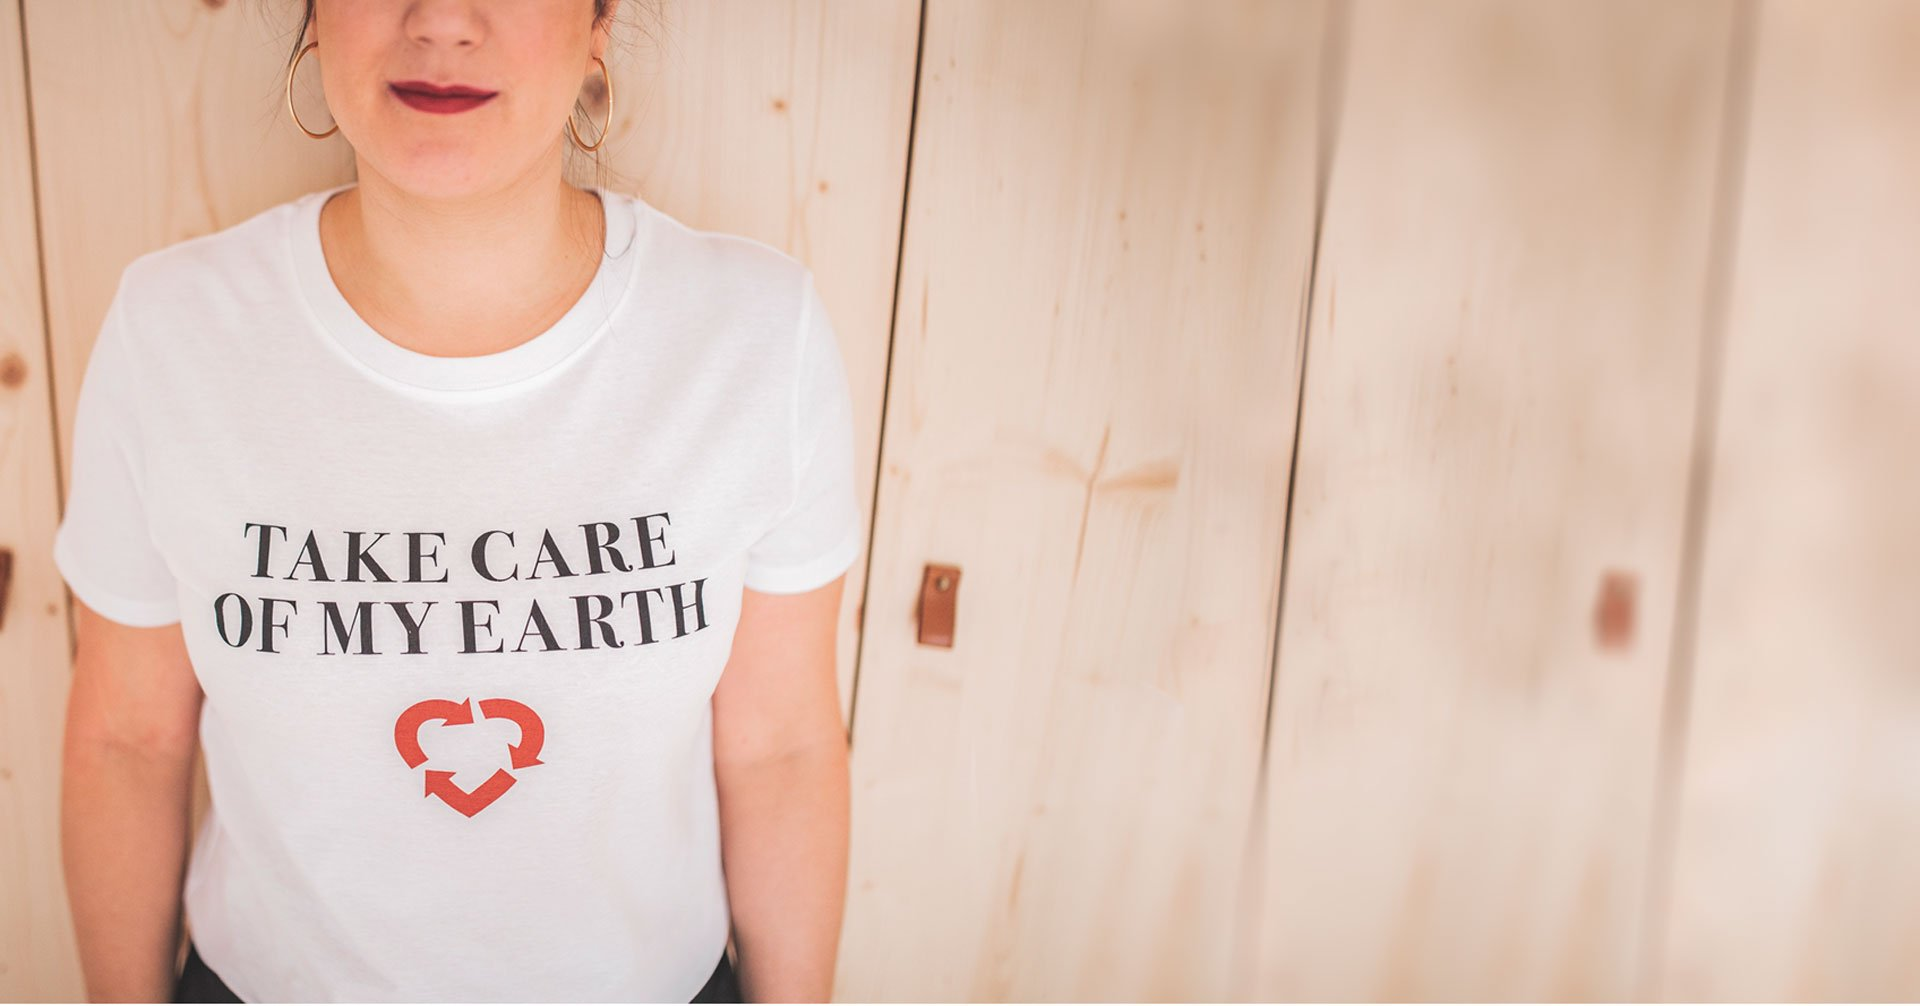 "Torax de una chica con una camiseta blanca que dice ""Take care of my earth"""